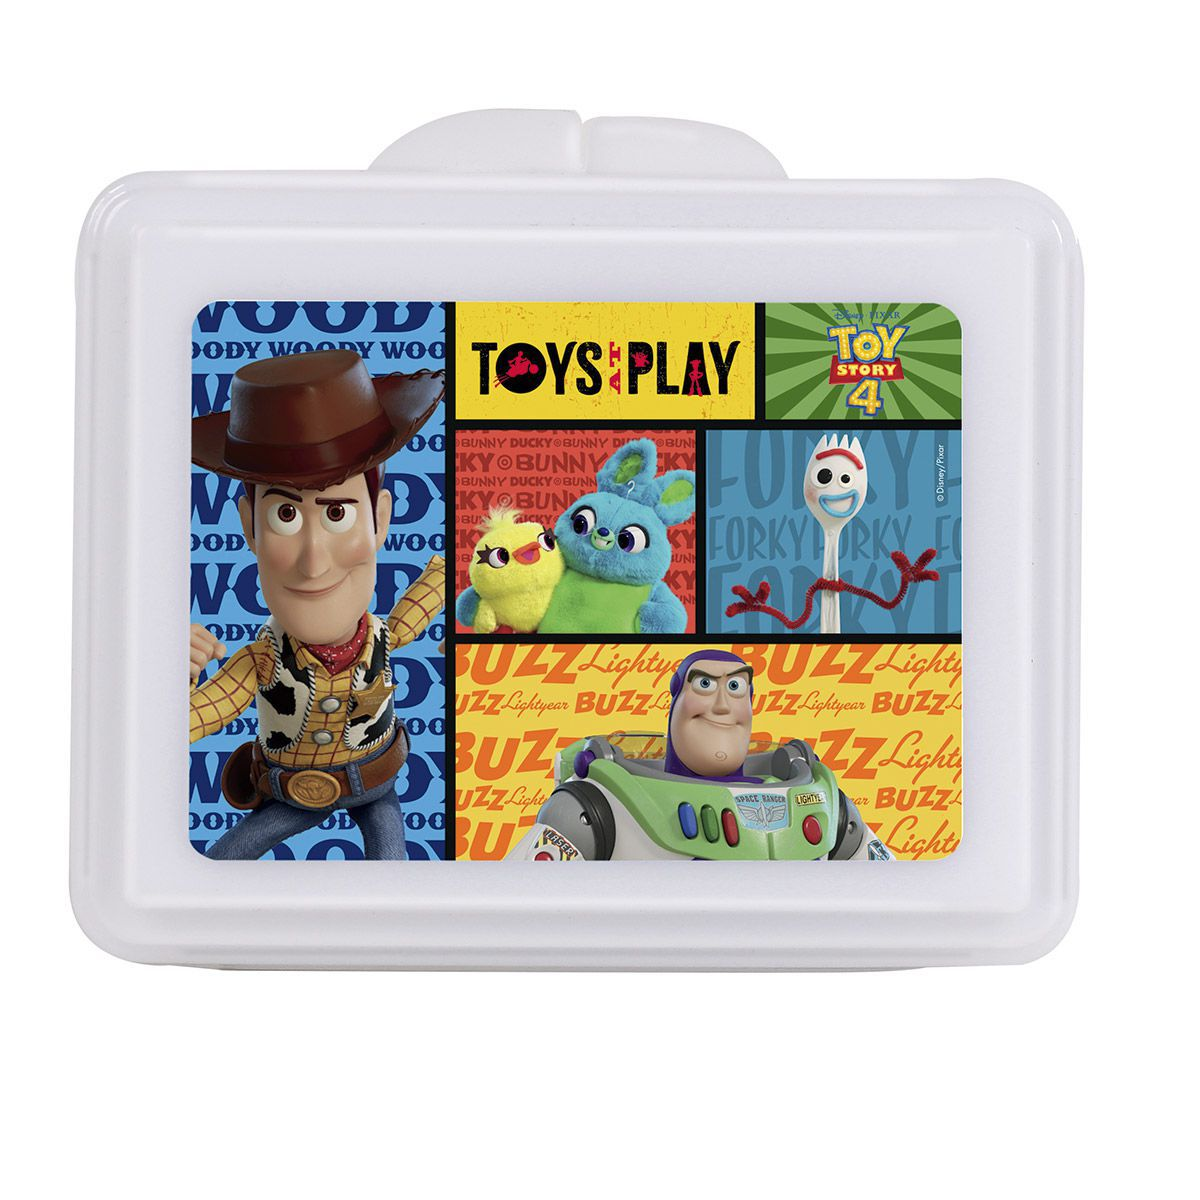 Kit Cantil + Porta-Lanches Toy Story Oficial Disney